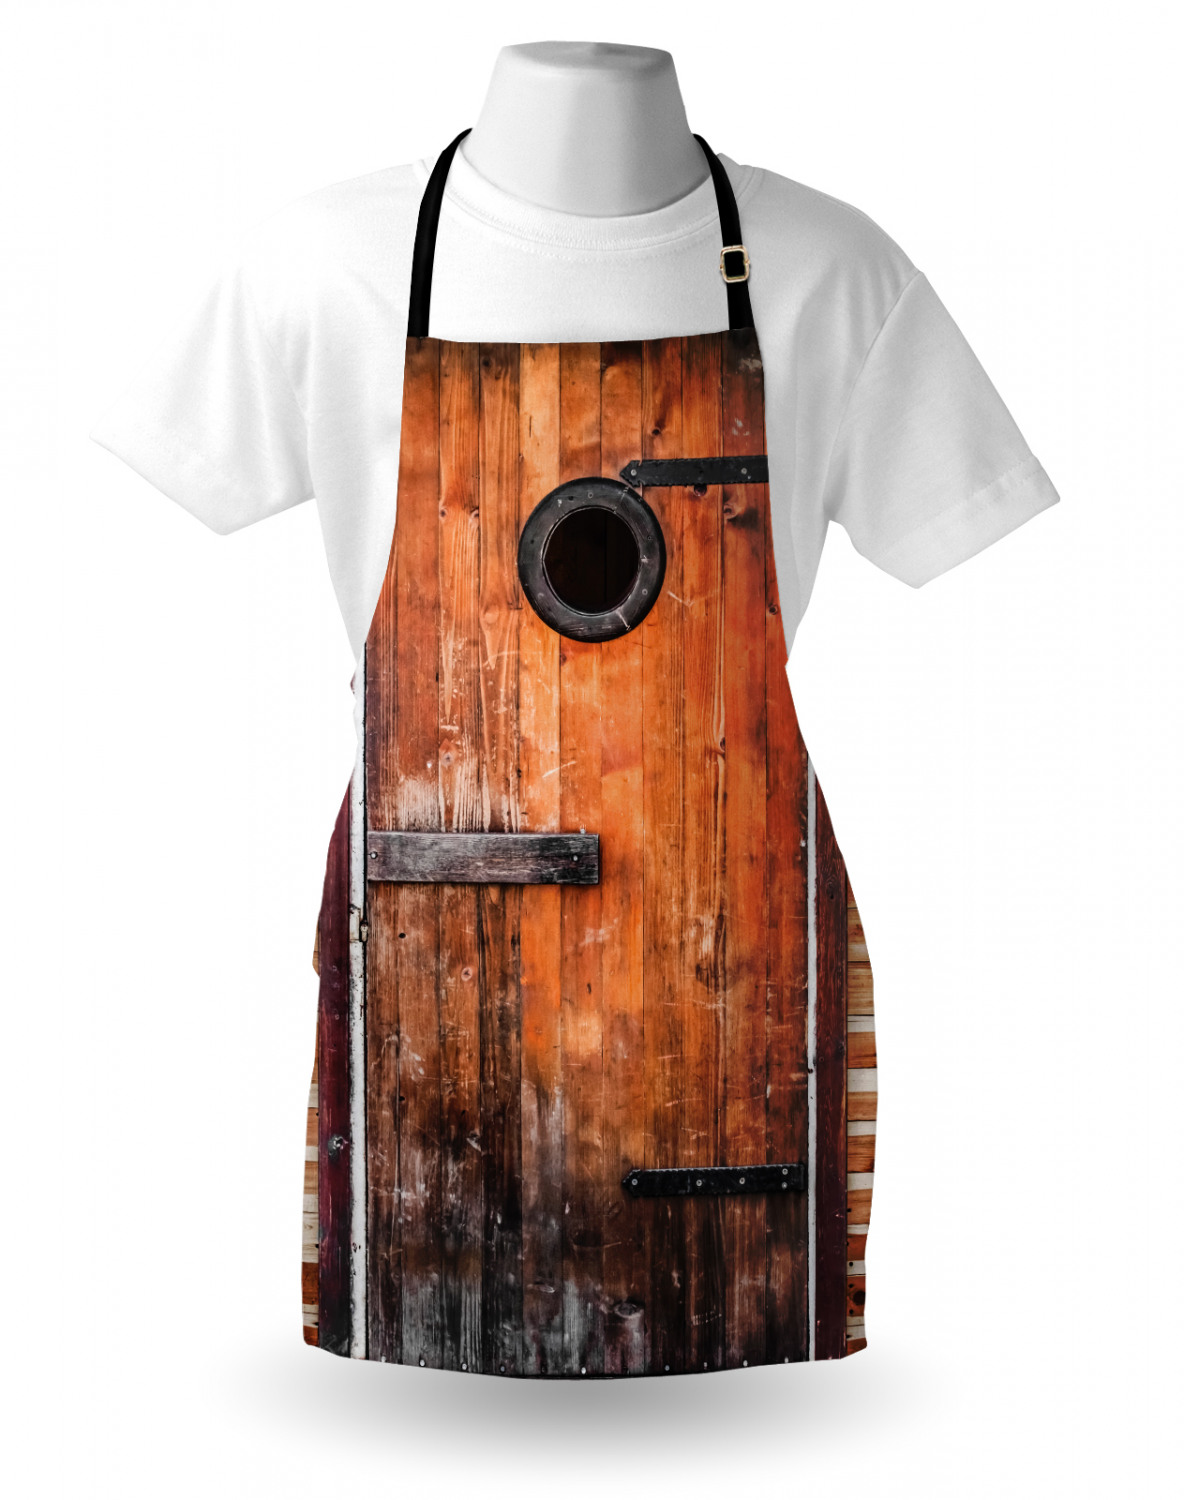 Ambesonne Apron Bib with Adjustable Neck for Adult Size Gardening